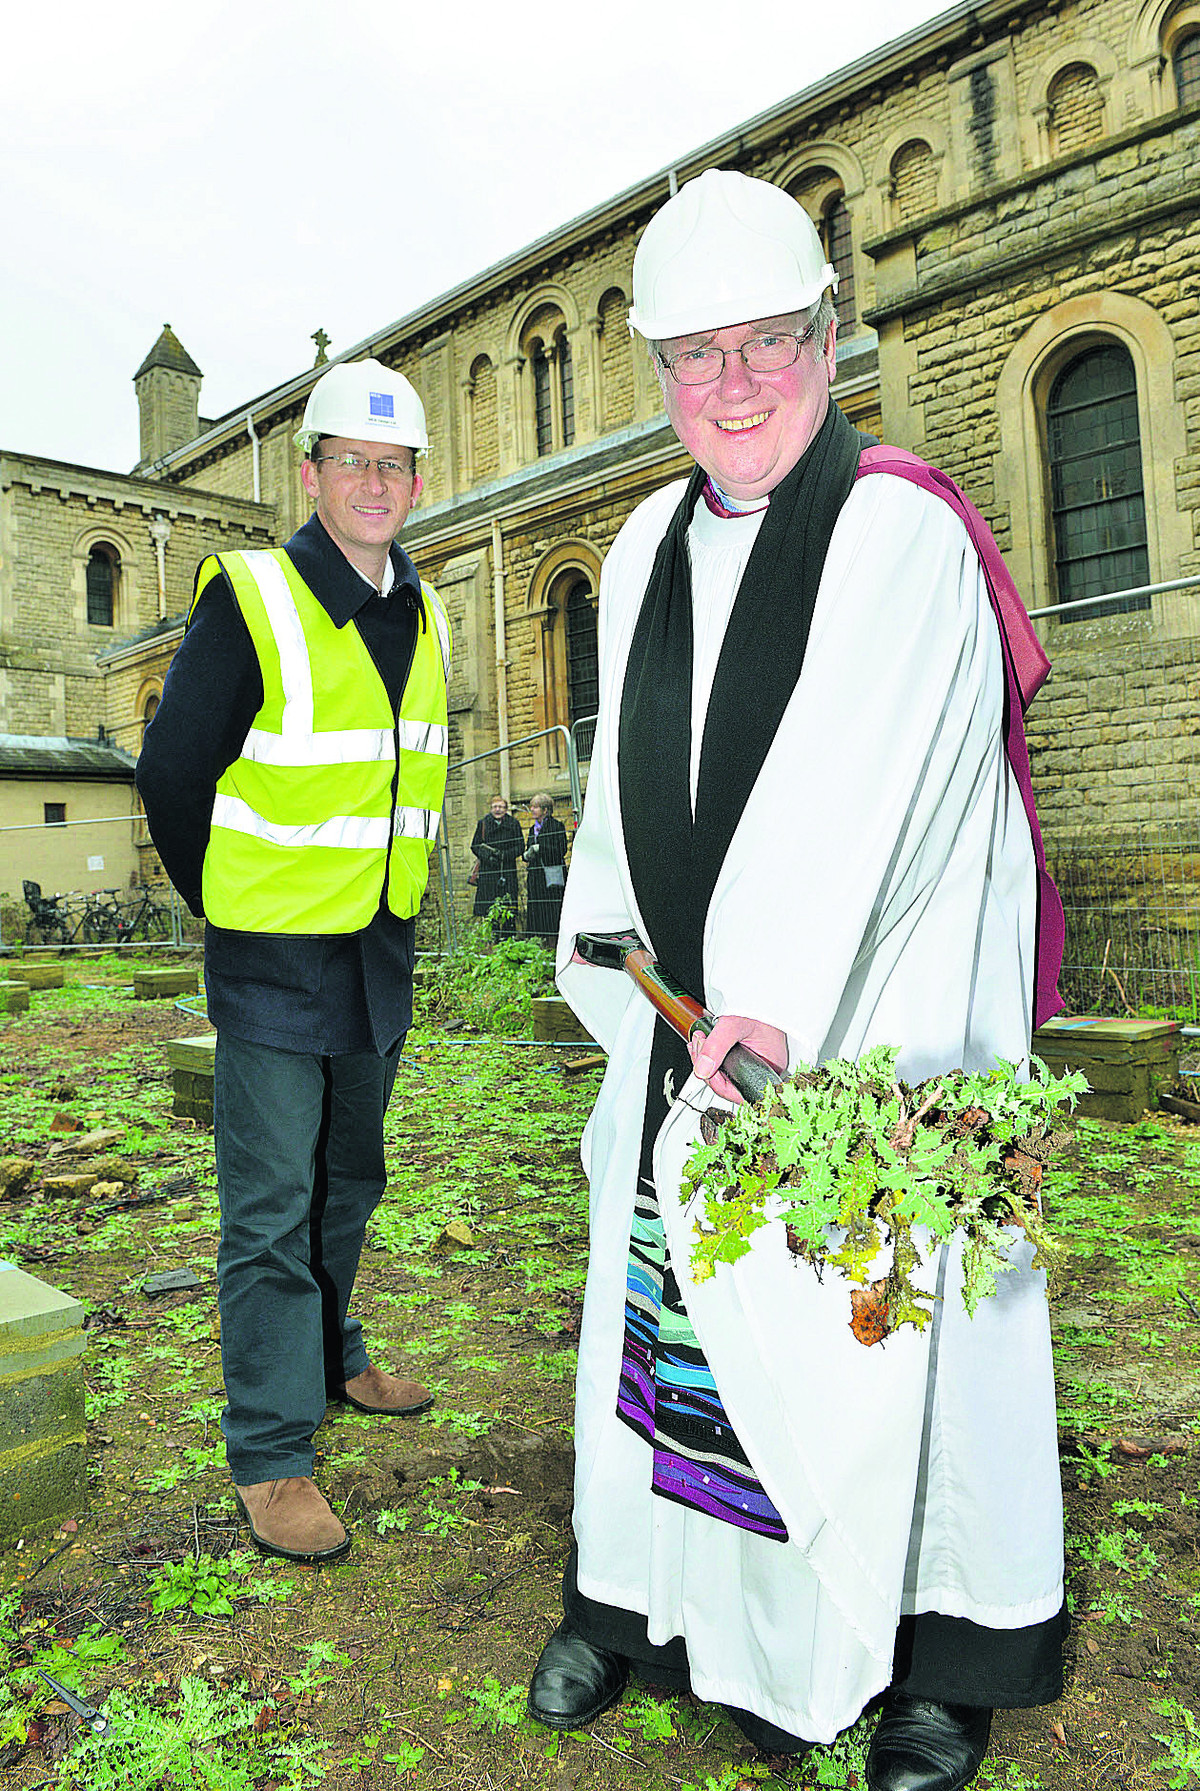 Charles Darby, director of MEB Designs, oversees The Very Rev Robert Key, digging the first turf at St Andrew's